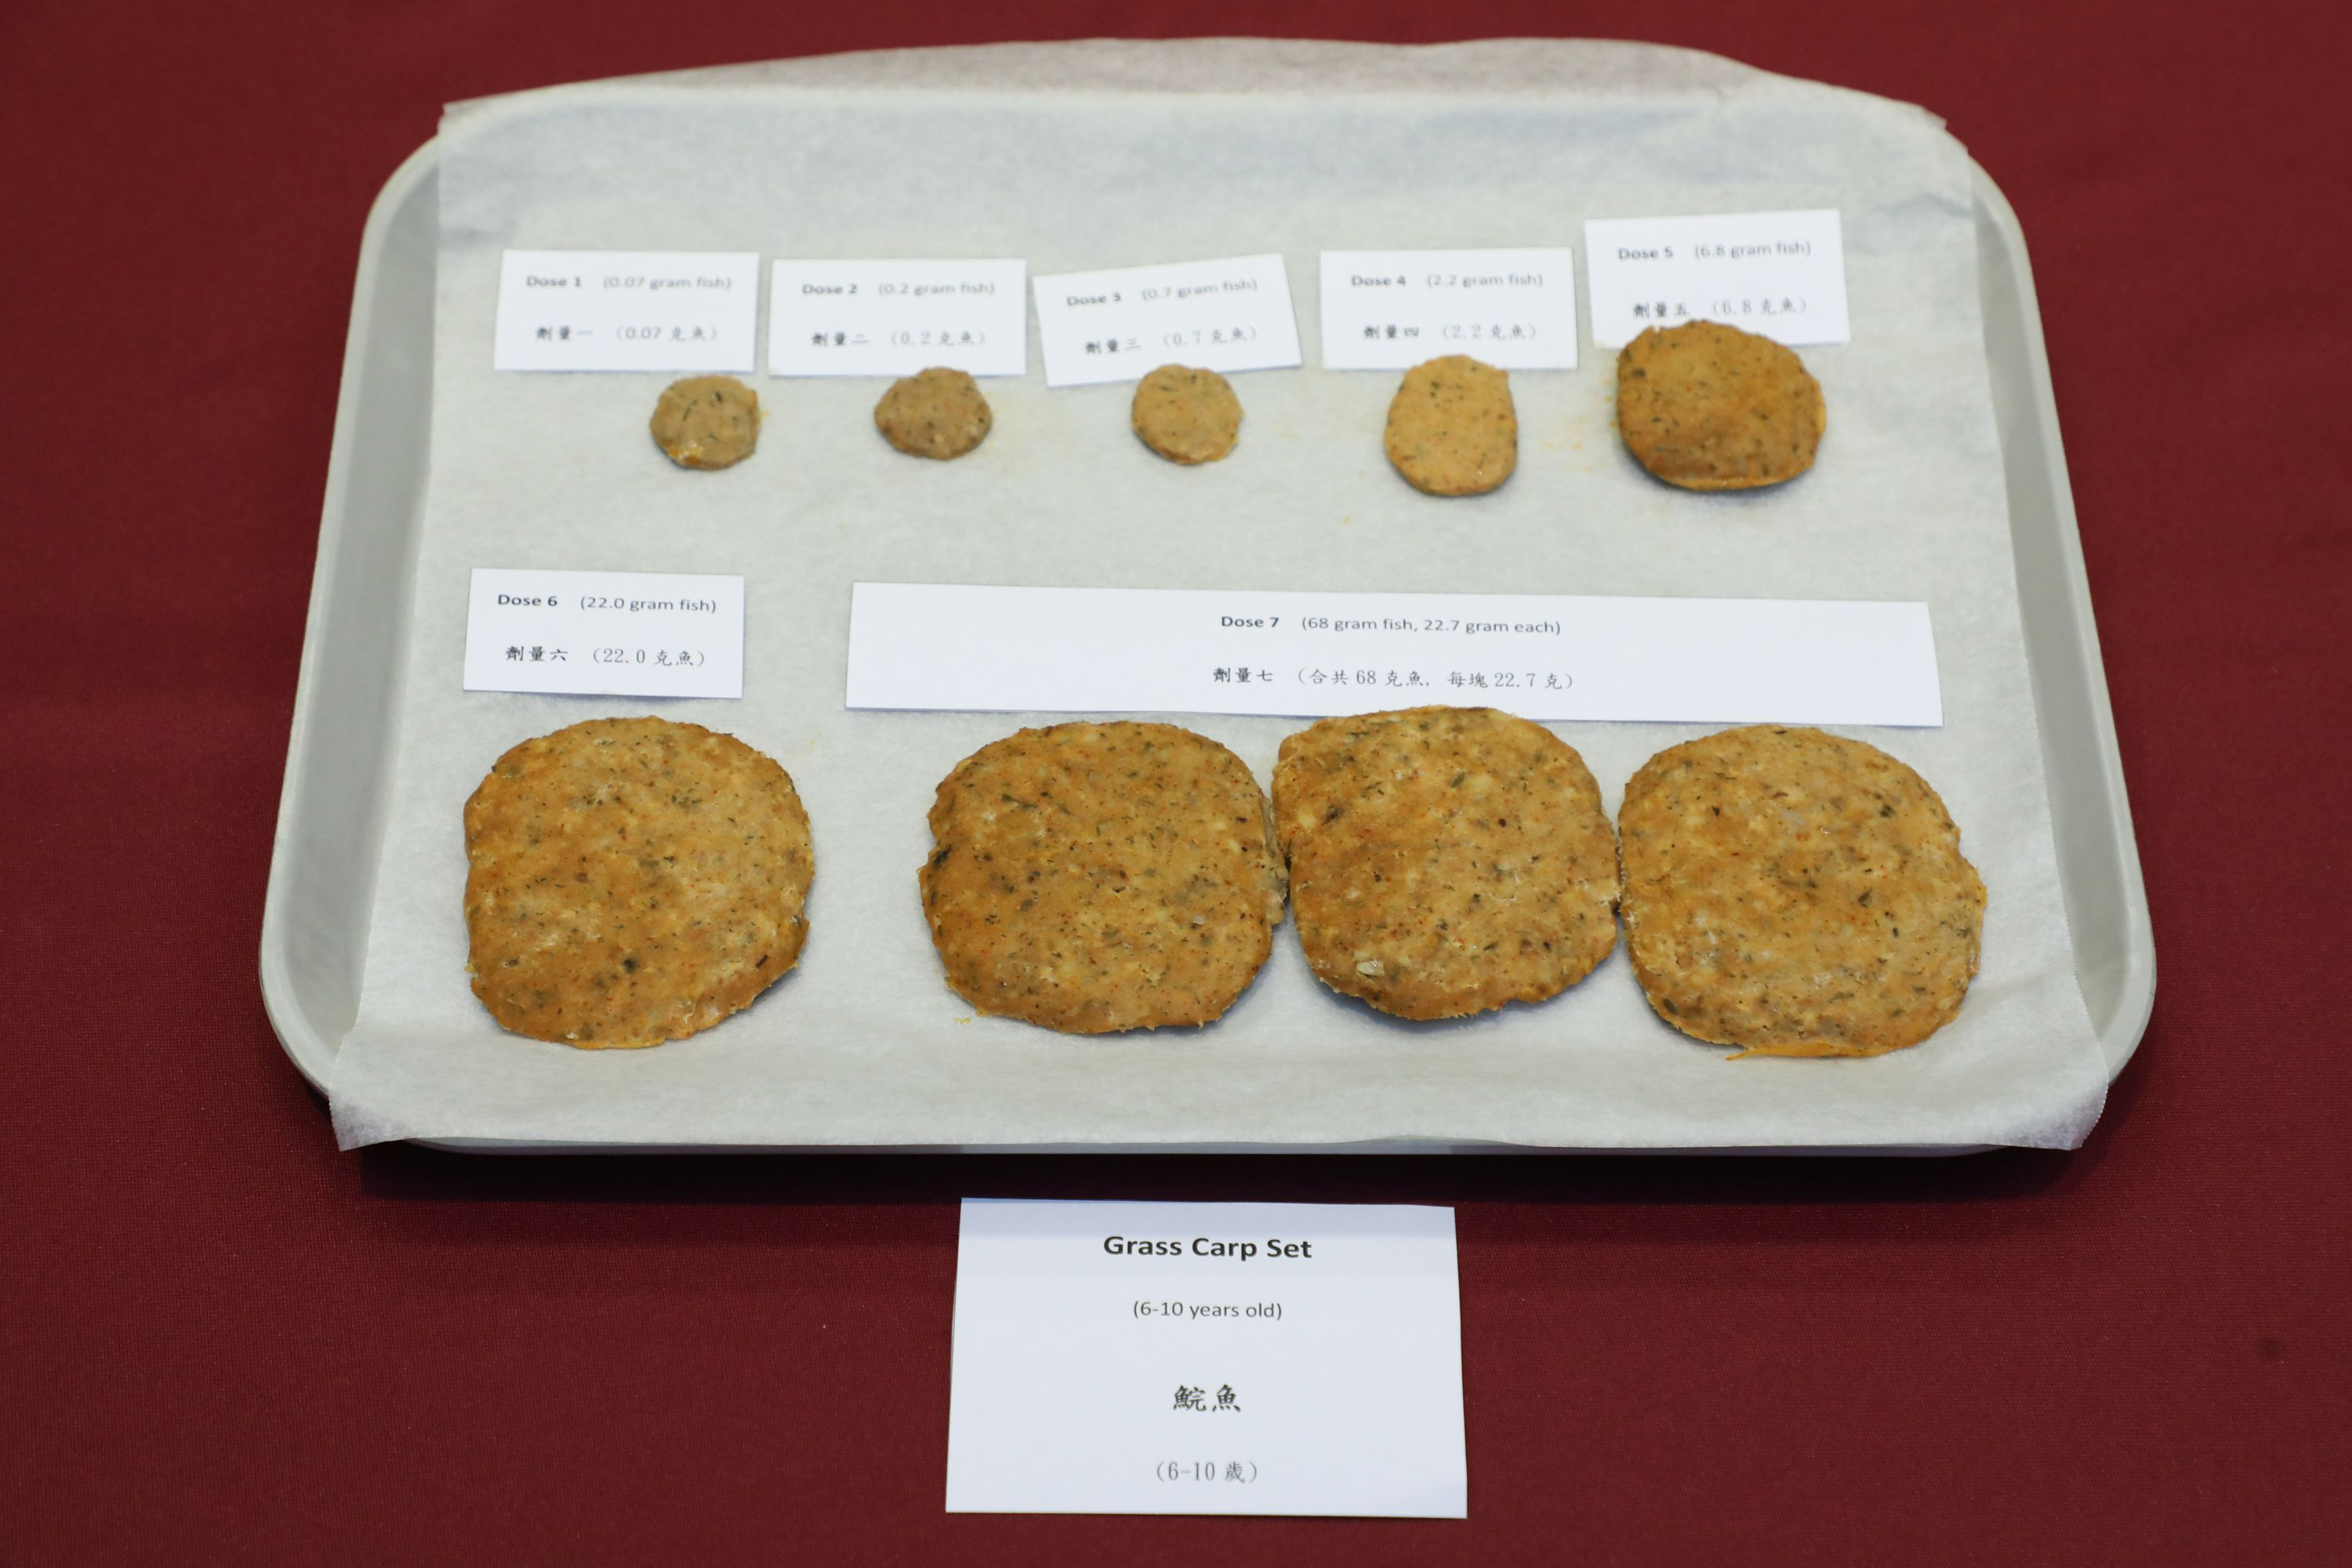 """Double-blind placebo-controlled oral food challenge"" is a gold measurement for food allergy diagnosis. The meat pies shown in the photo are with a mixture of pork and grass carp. Each of the pieces are in different portion of grass carp for accurate testing. Since different herbs and flavorings are added to the meat pies, participant can hardly tell what are the ingredients."